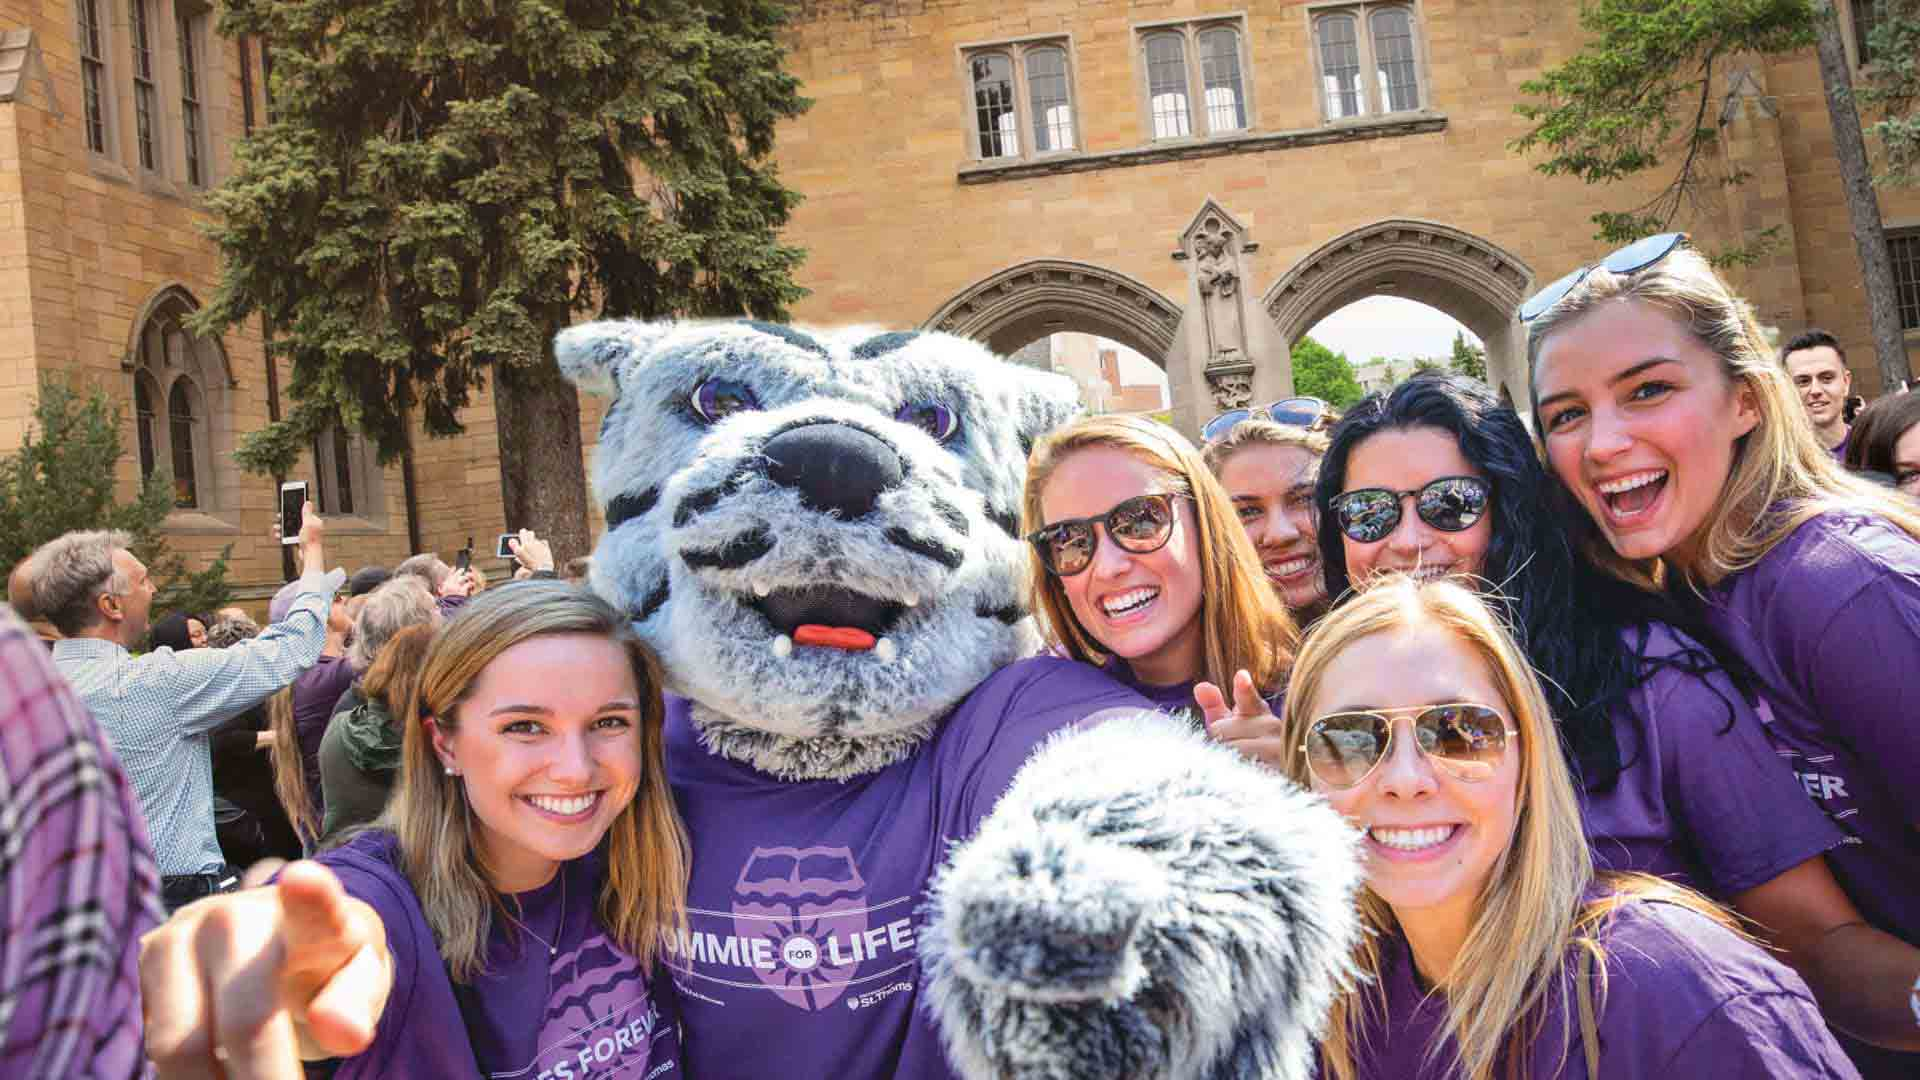 University of St. Thomas students with Tommie the mascot.